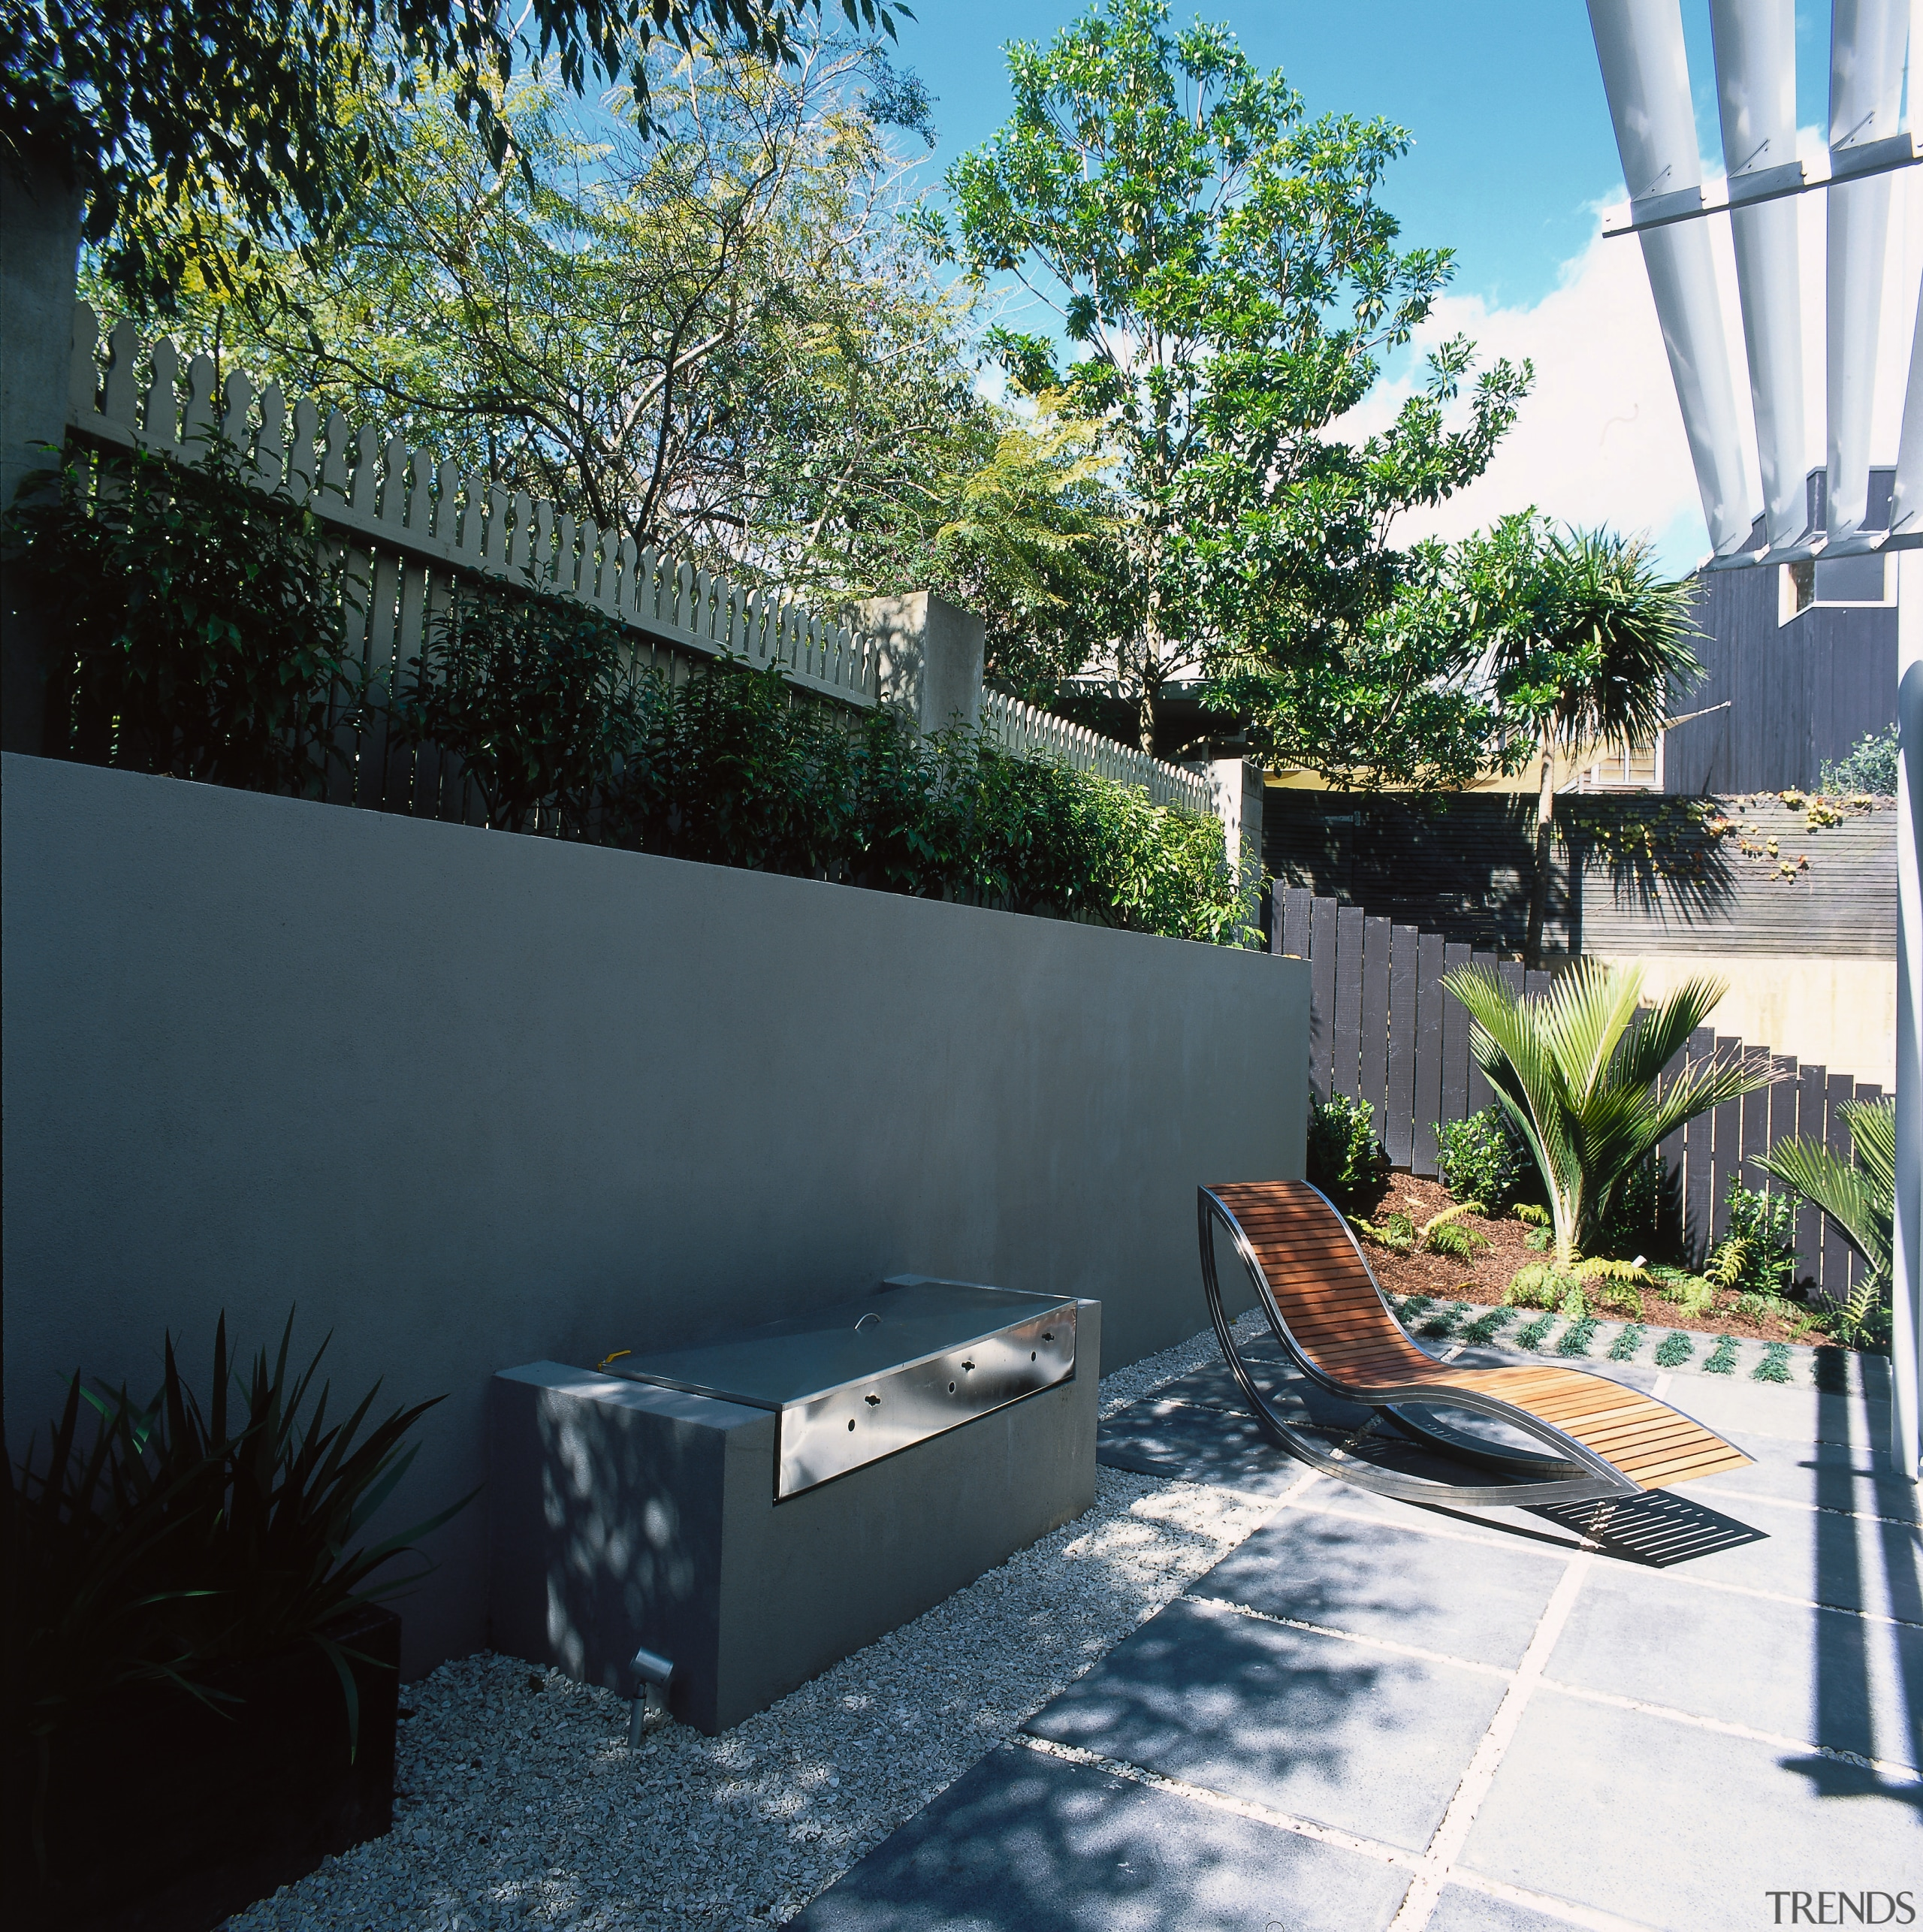 View of the outdoor living space - View architecture, backyard, courtyard, estate, home, house, landscaping, outdoor structure, plant, property, real estate, residential area, roof, tree, wall, yard, black